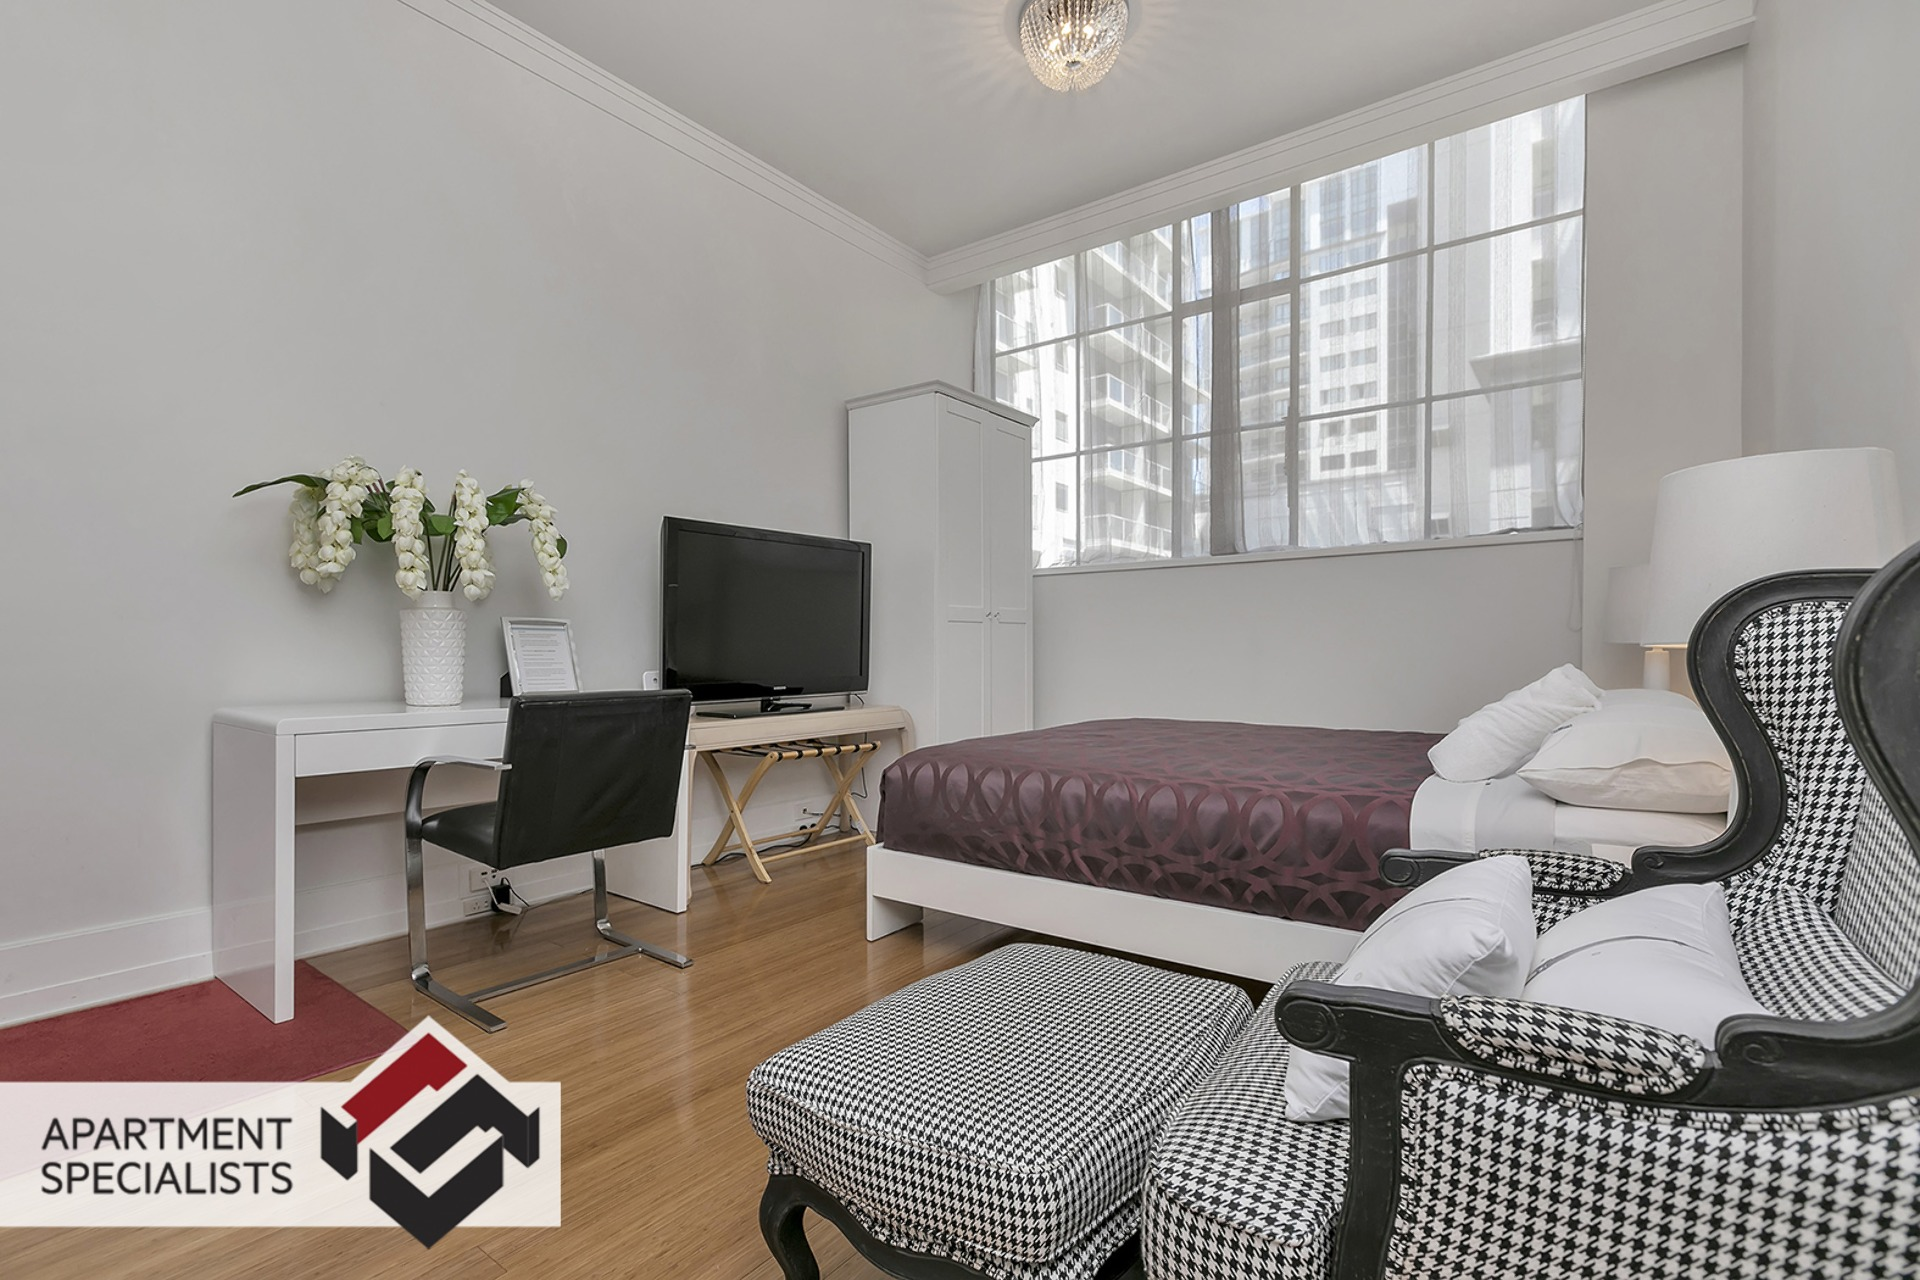 2 | 35 Hobson Street, City Centre | Apartment Specialists